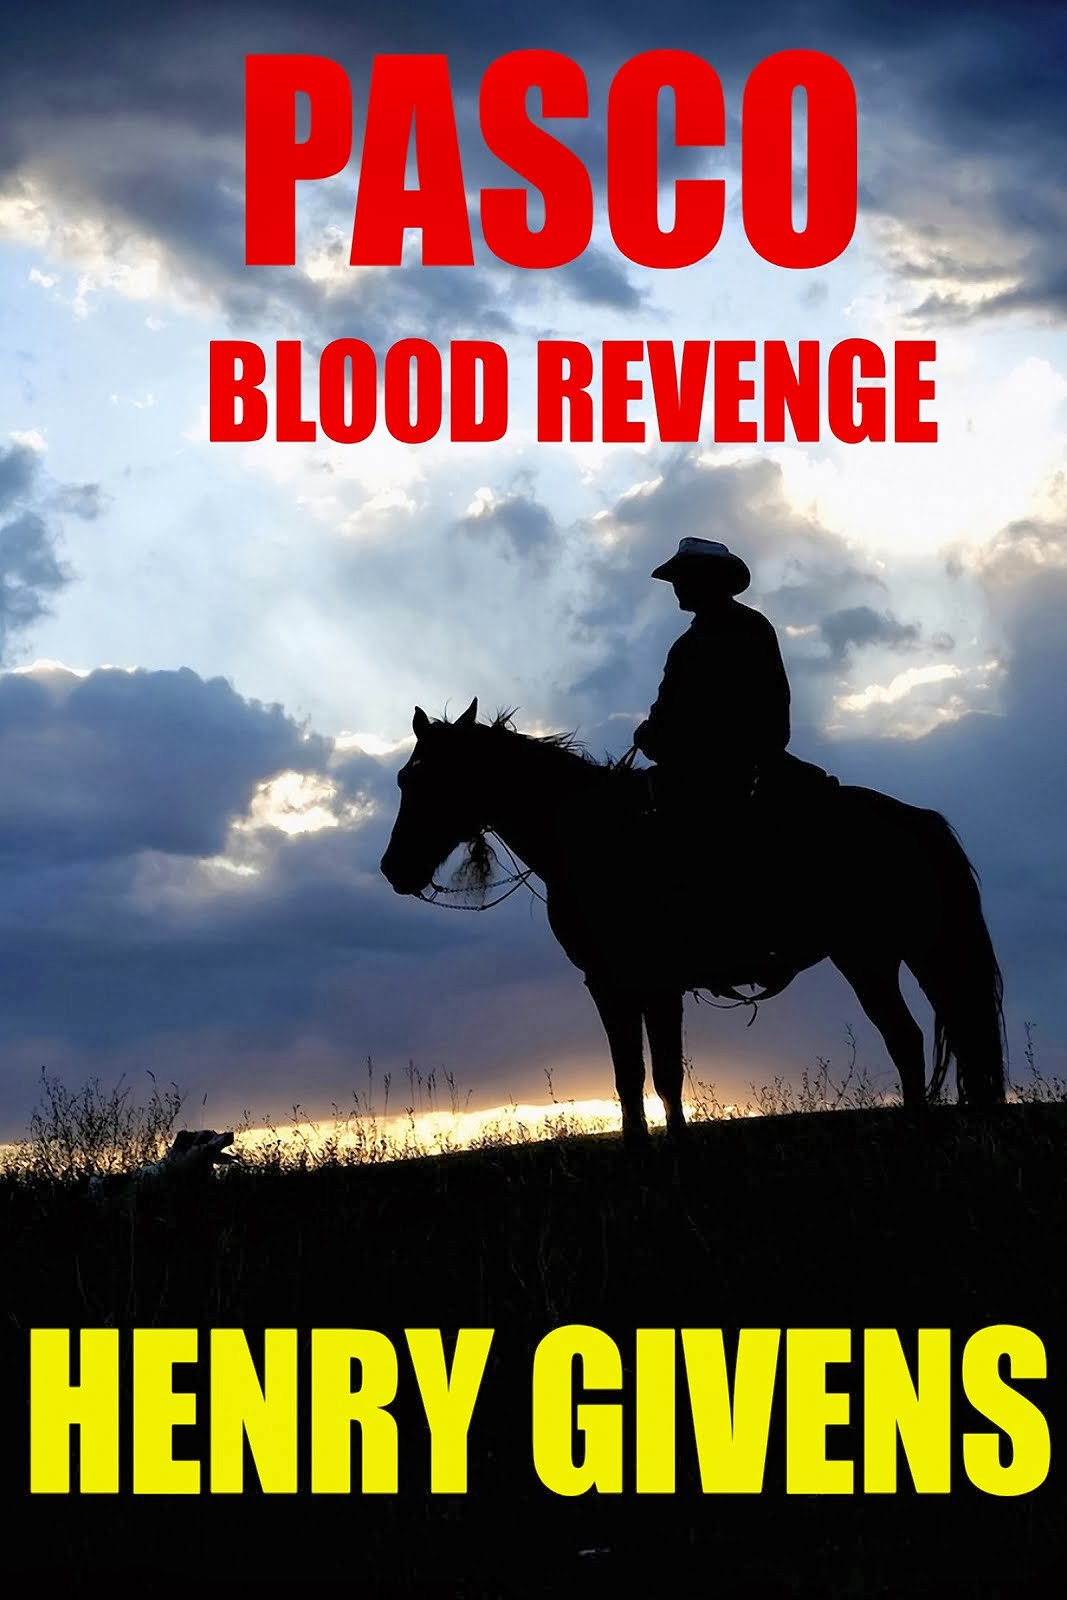 Pasco, Blood Revenge